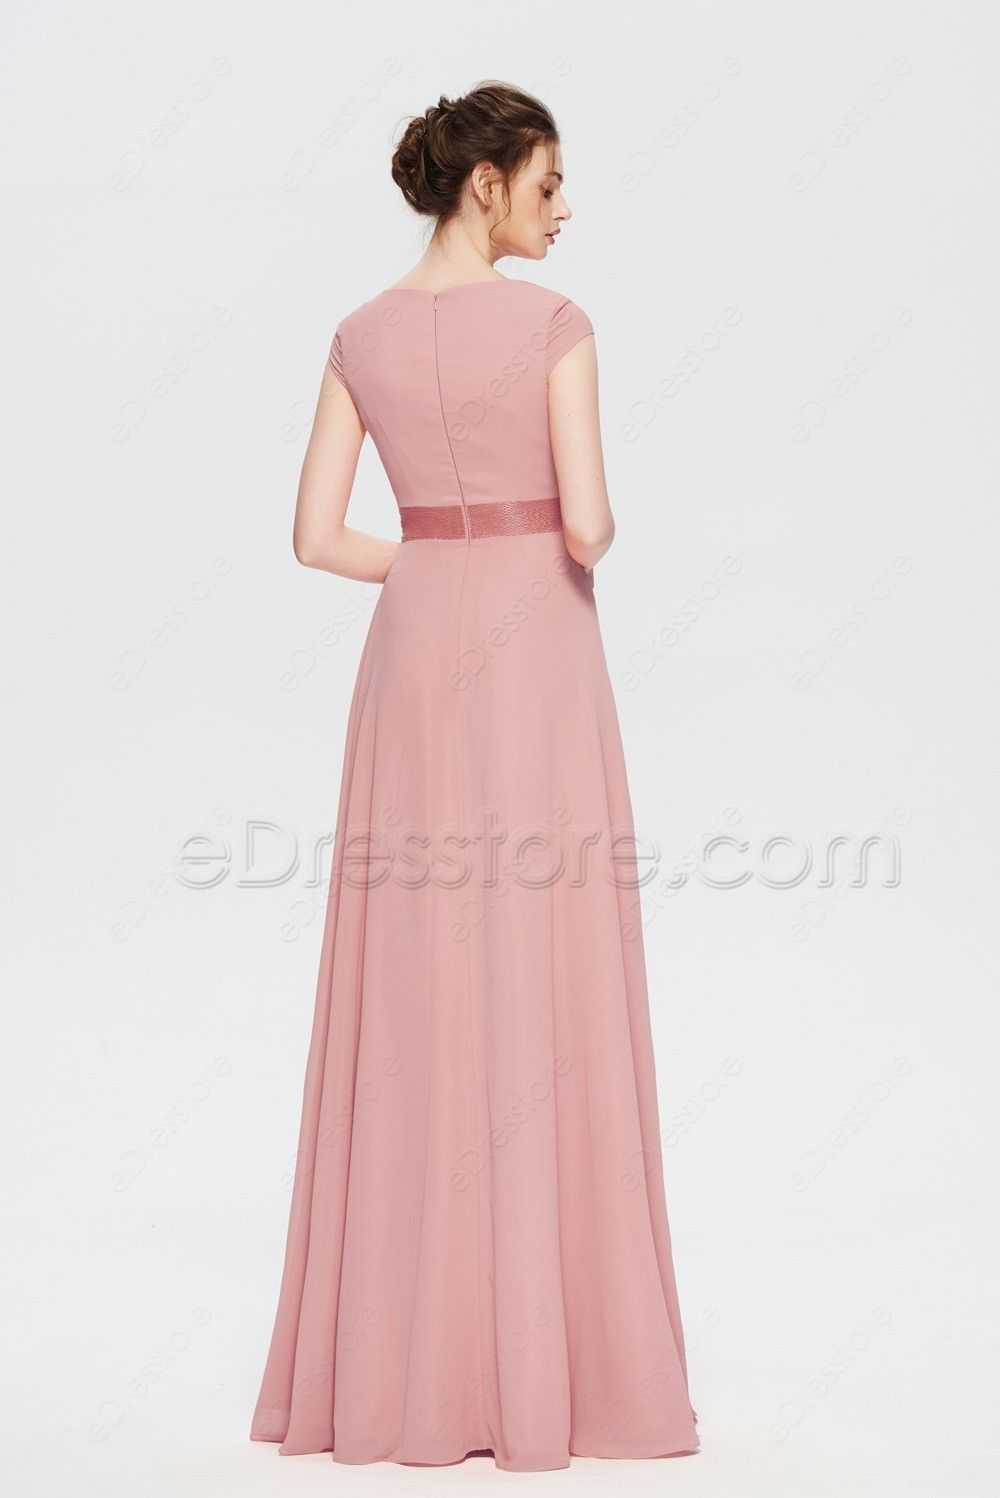 Modest Dusty Rose Mother Of The Bride Dresses Cap Sleeves Dresses Bride Dress Groom Dress